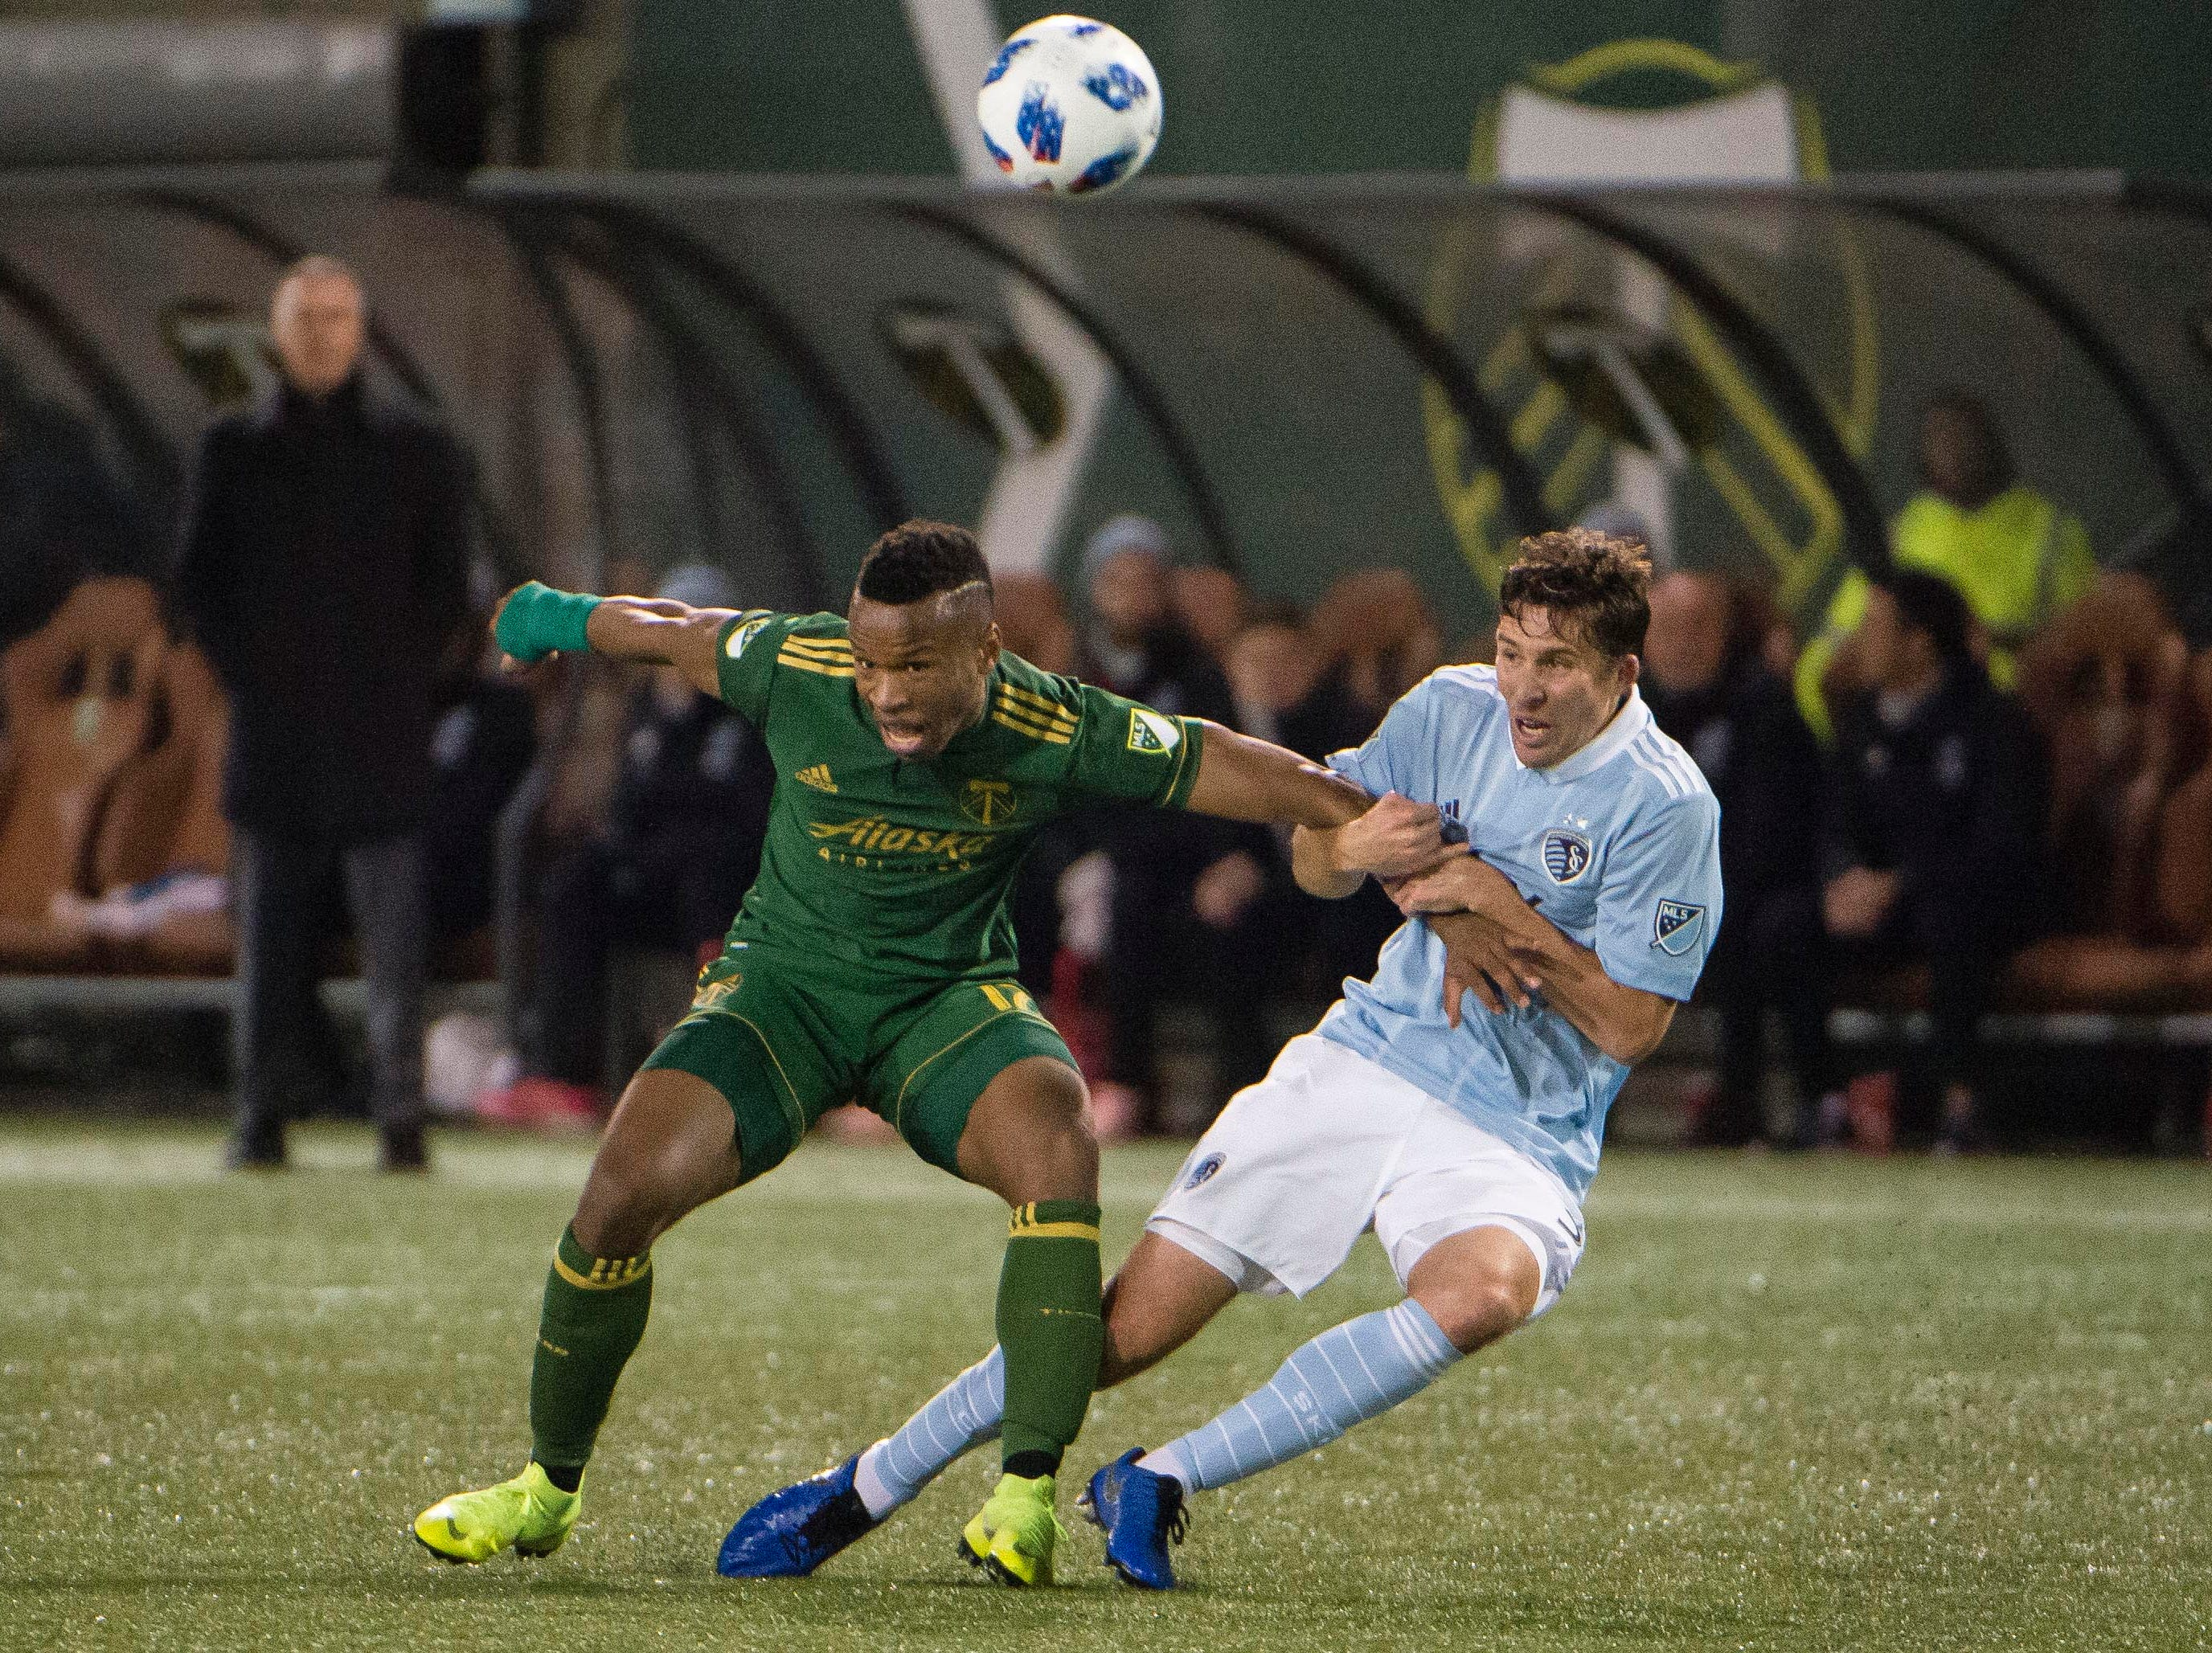 Nov 25, 2018; Portland, OR, USA; Portland Timbers forward Jeremy Ebobisse (17) is held by Sporting Kansas City defender Matt Besler (5) during the second half in the first leg of the MLS Western Conference Championship at Providence Park. The game ended tied 0-0. Mandatory Credit: Troy Wayrynen-USA TODAY Sports